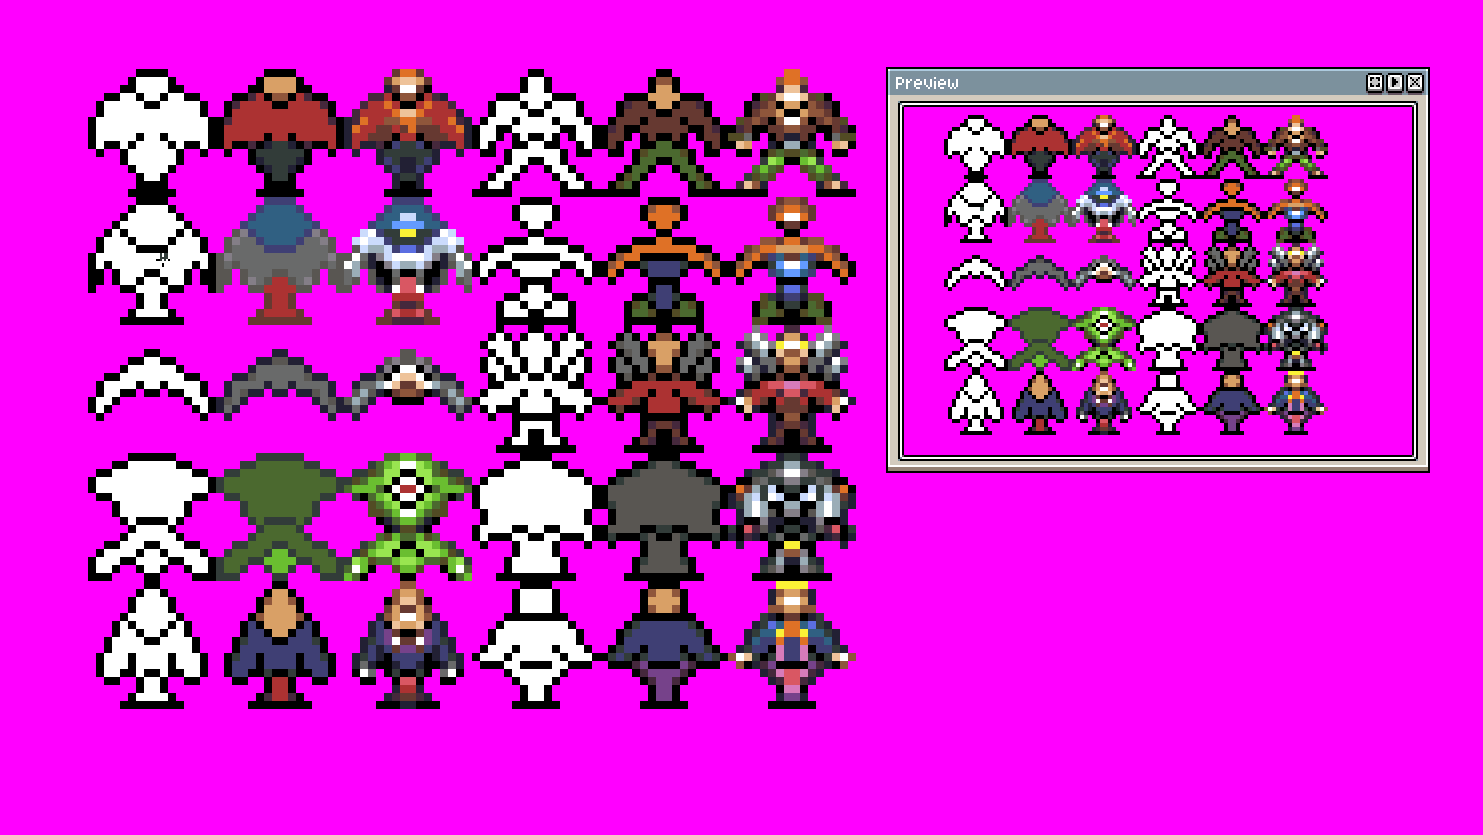 10 sprite characters in 3 steps